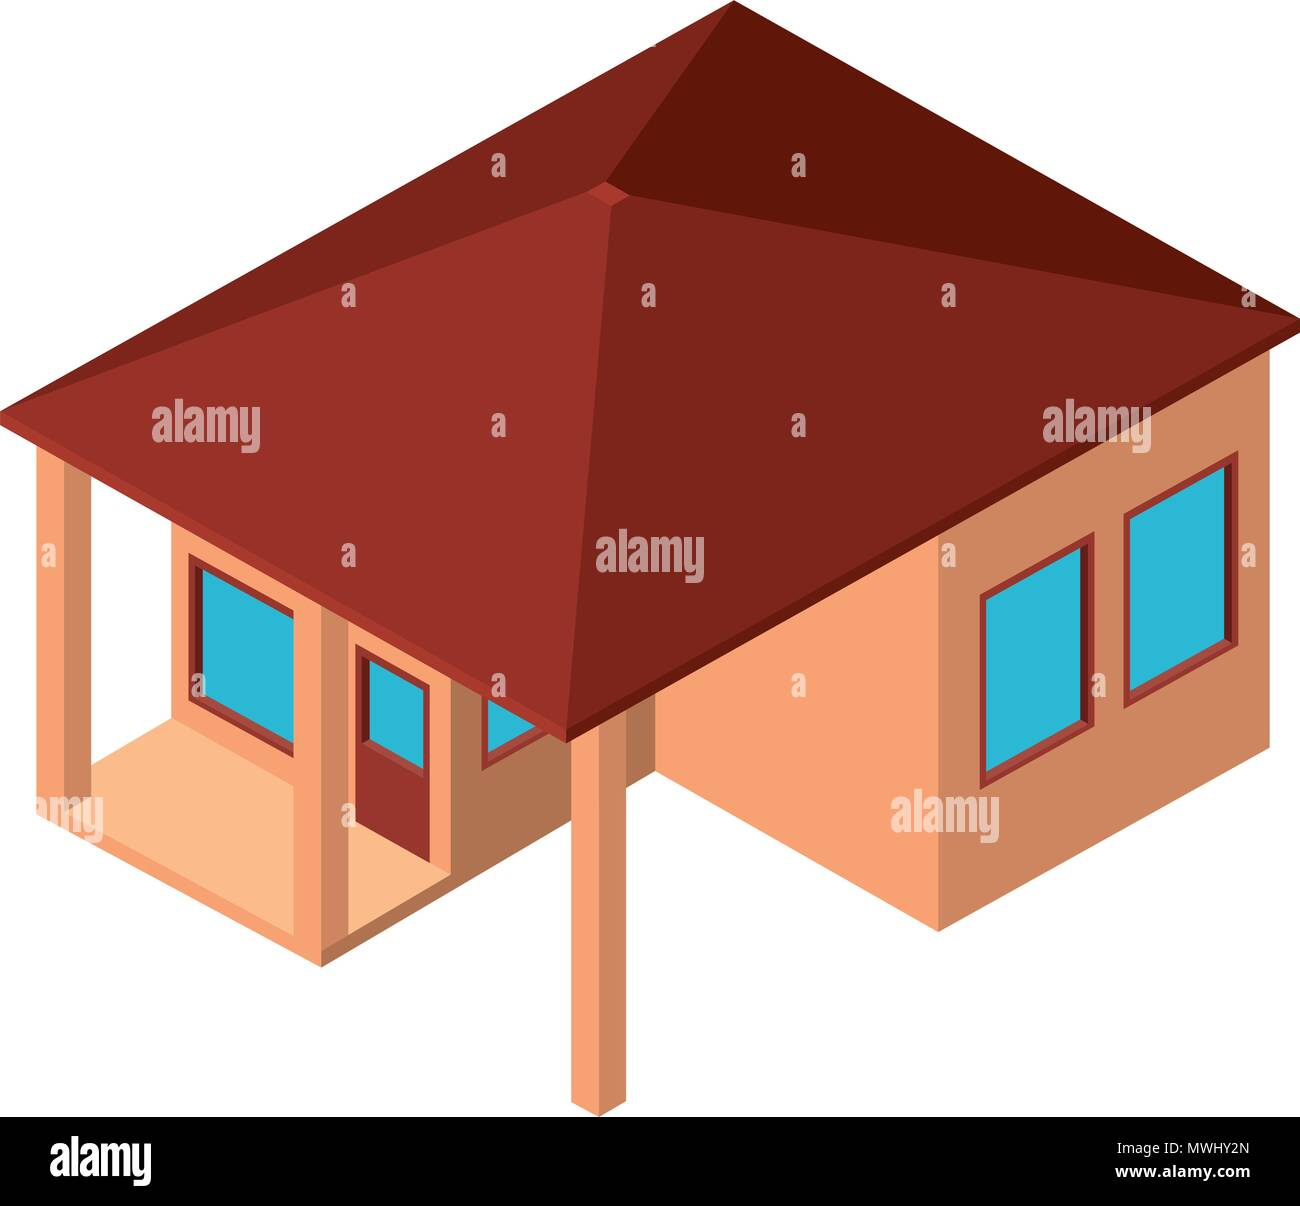 Flat 3d Isometric Design House Stockfotos & Flat 3d Isometric Design ...